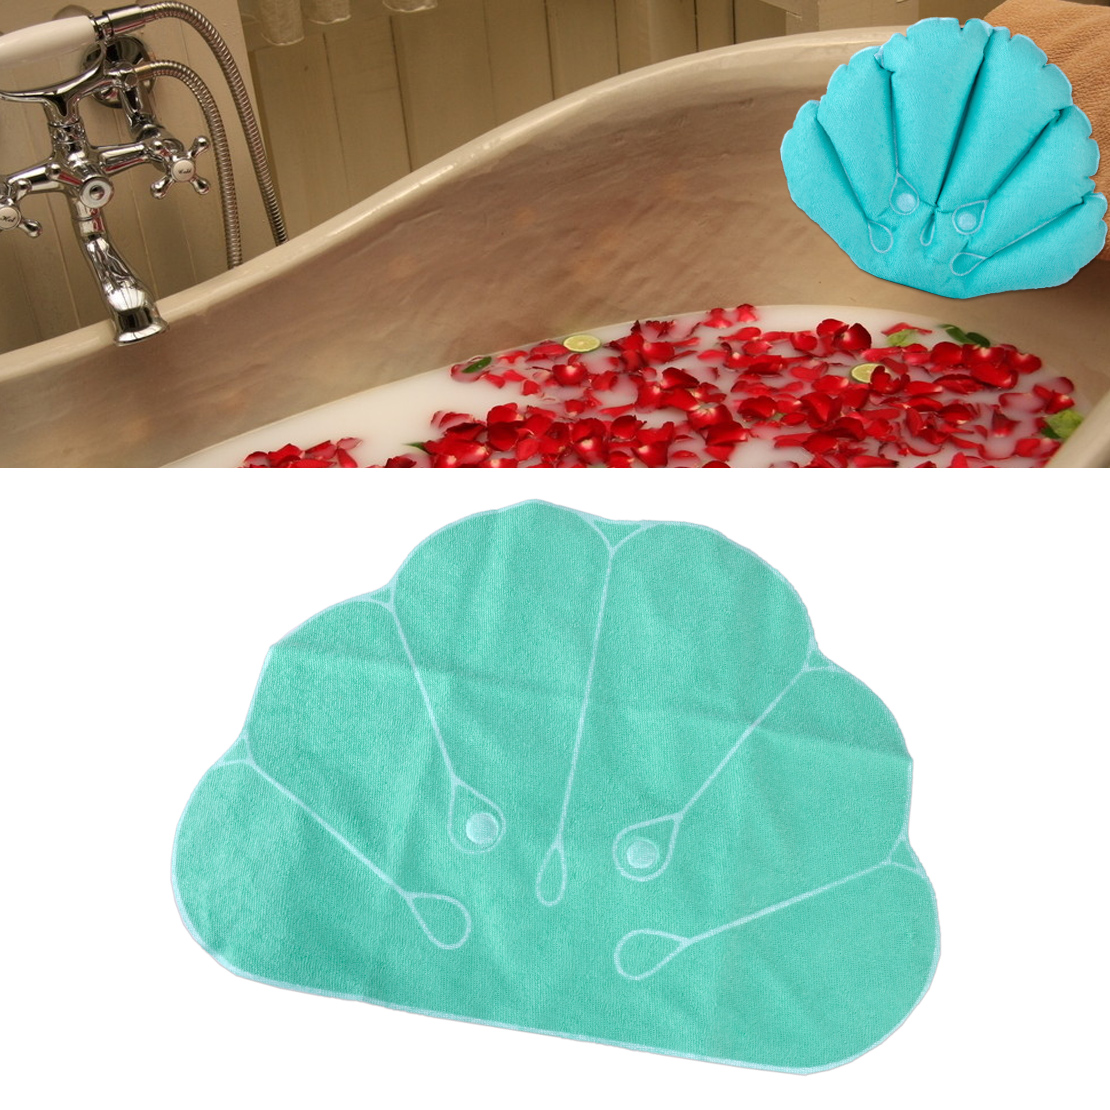 PVC u0026 Terrycloth Shell Shape Inflatable Bath Pillow Terrycloth Suction Cup  Back Neck Cushion Home Spa